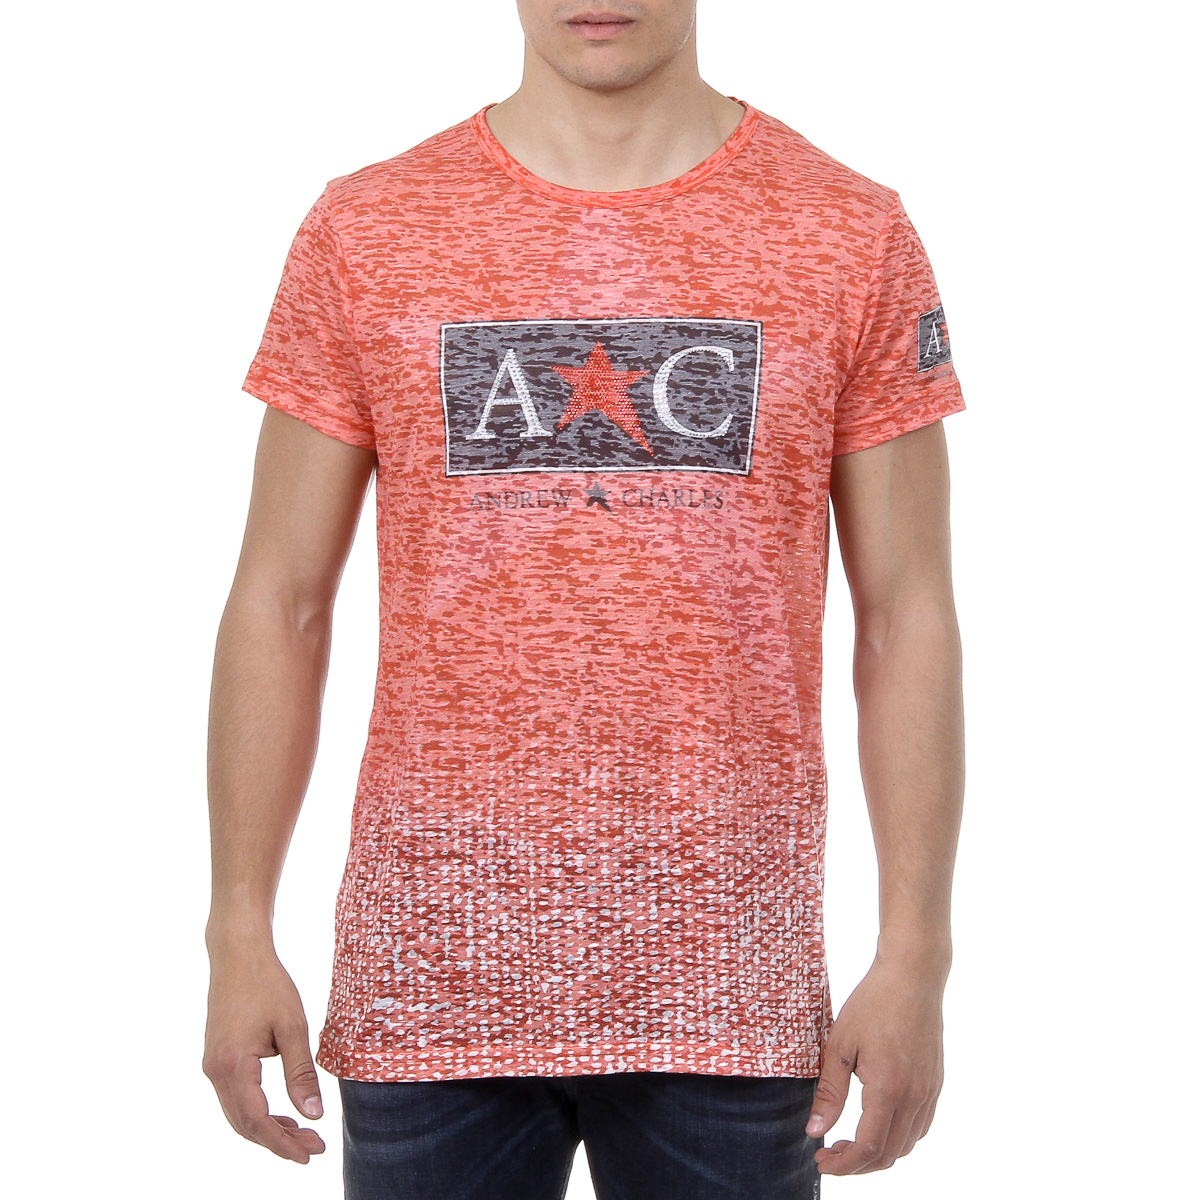 Primary image for Andrew Charles Mens T-Shirt Short Sleeves Round Neck Red LEVI